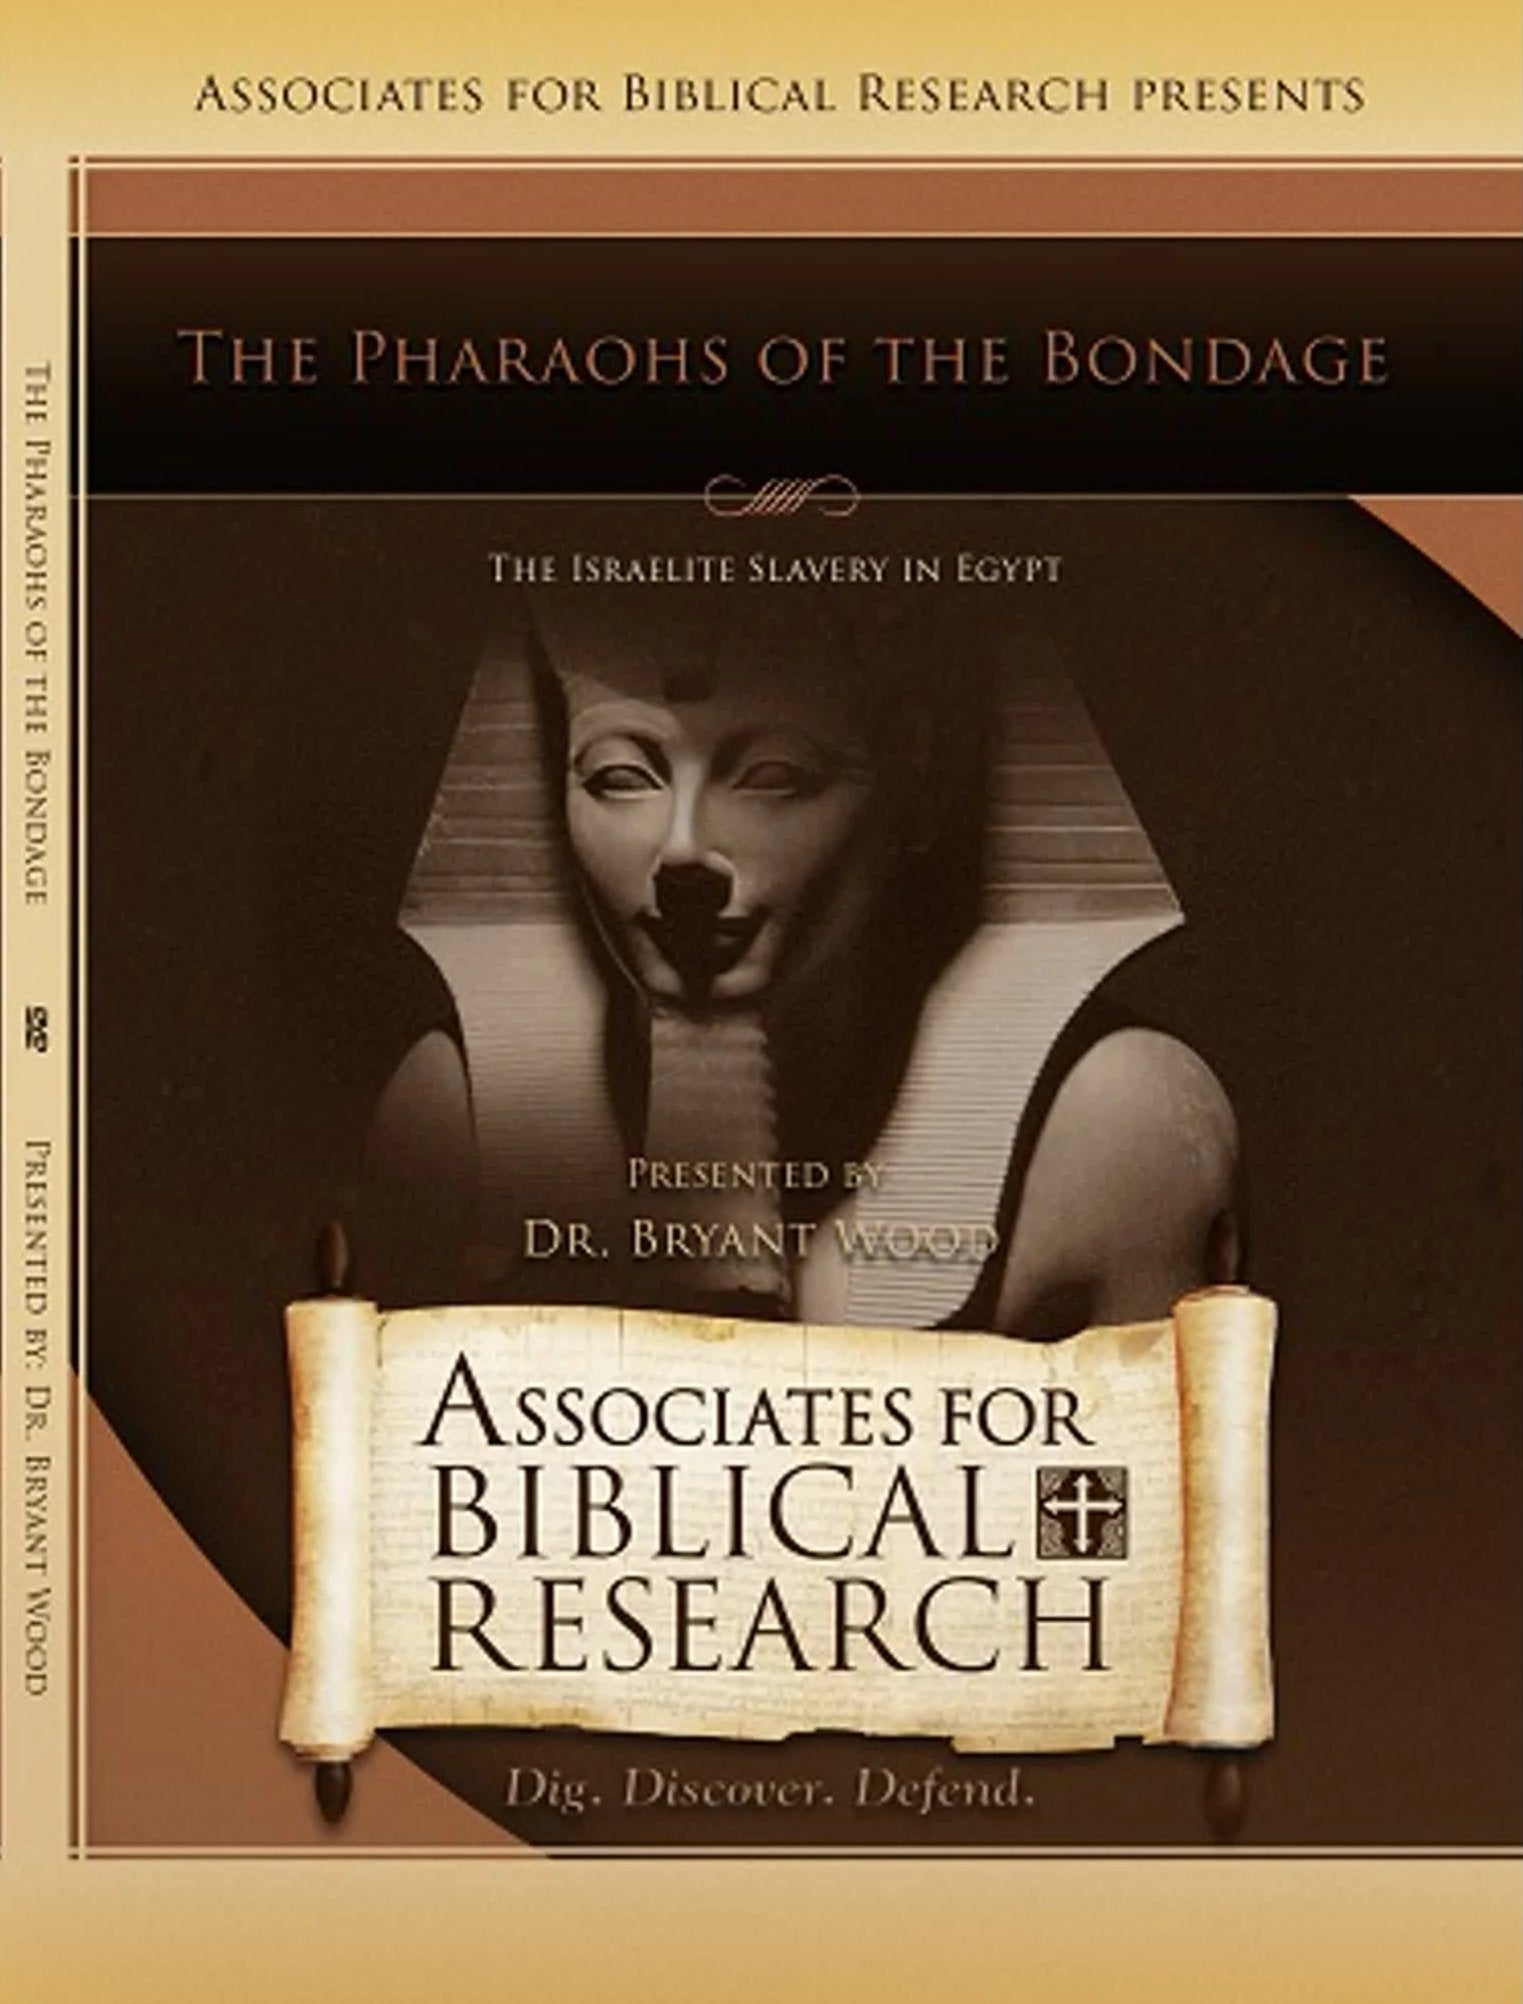 The Pharaohs of the Bondage: The Israelite Slavery in Egypt DVD